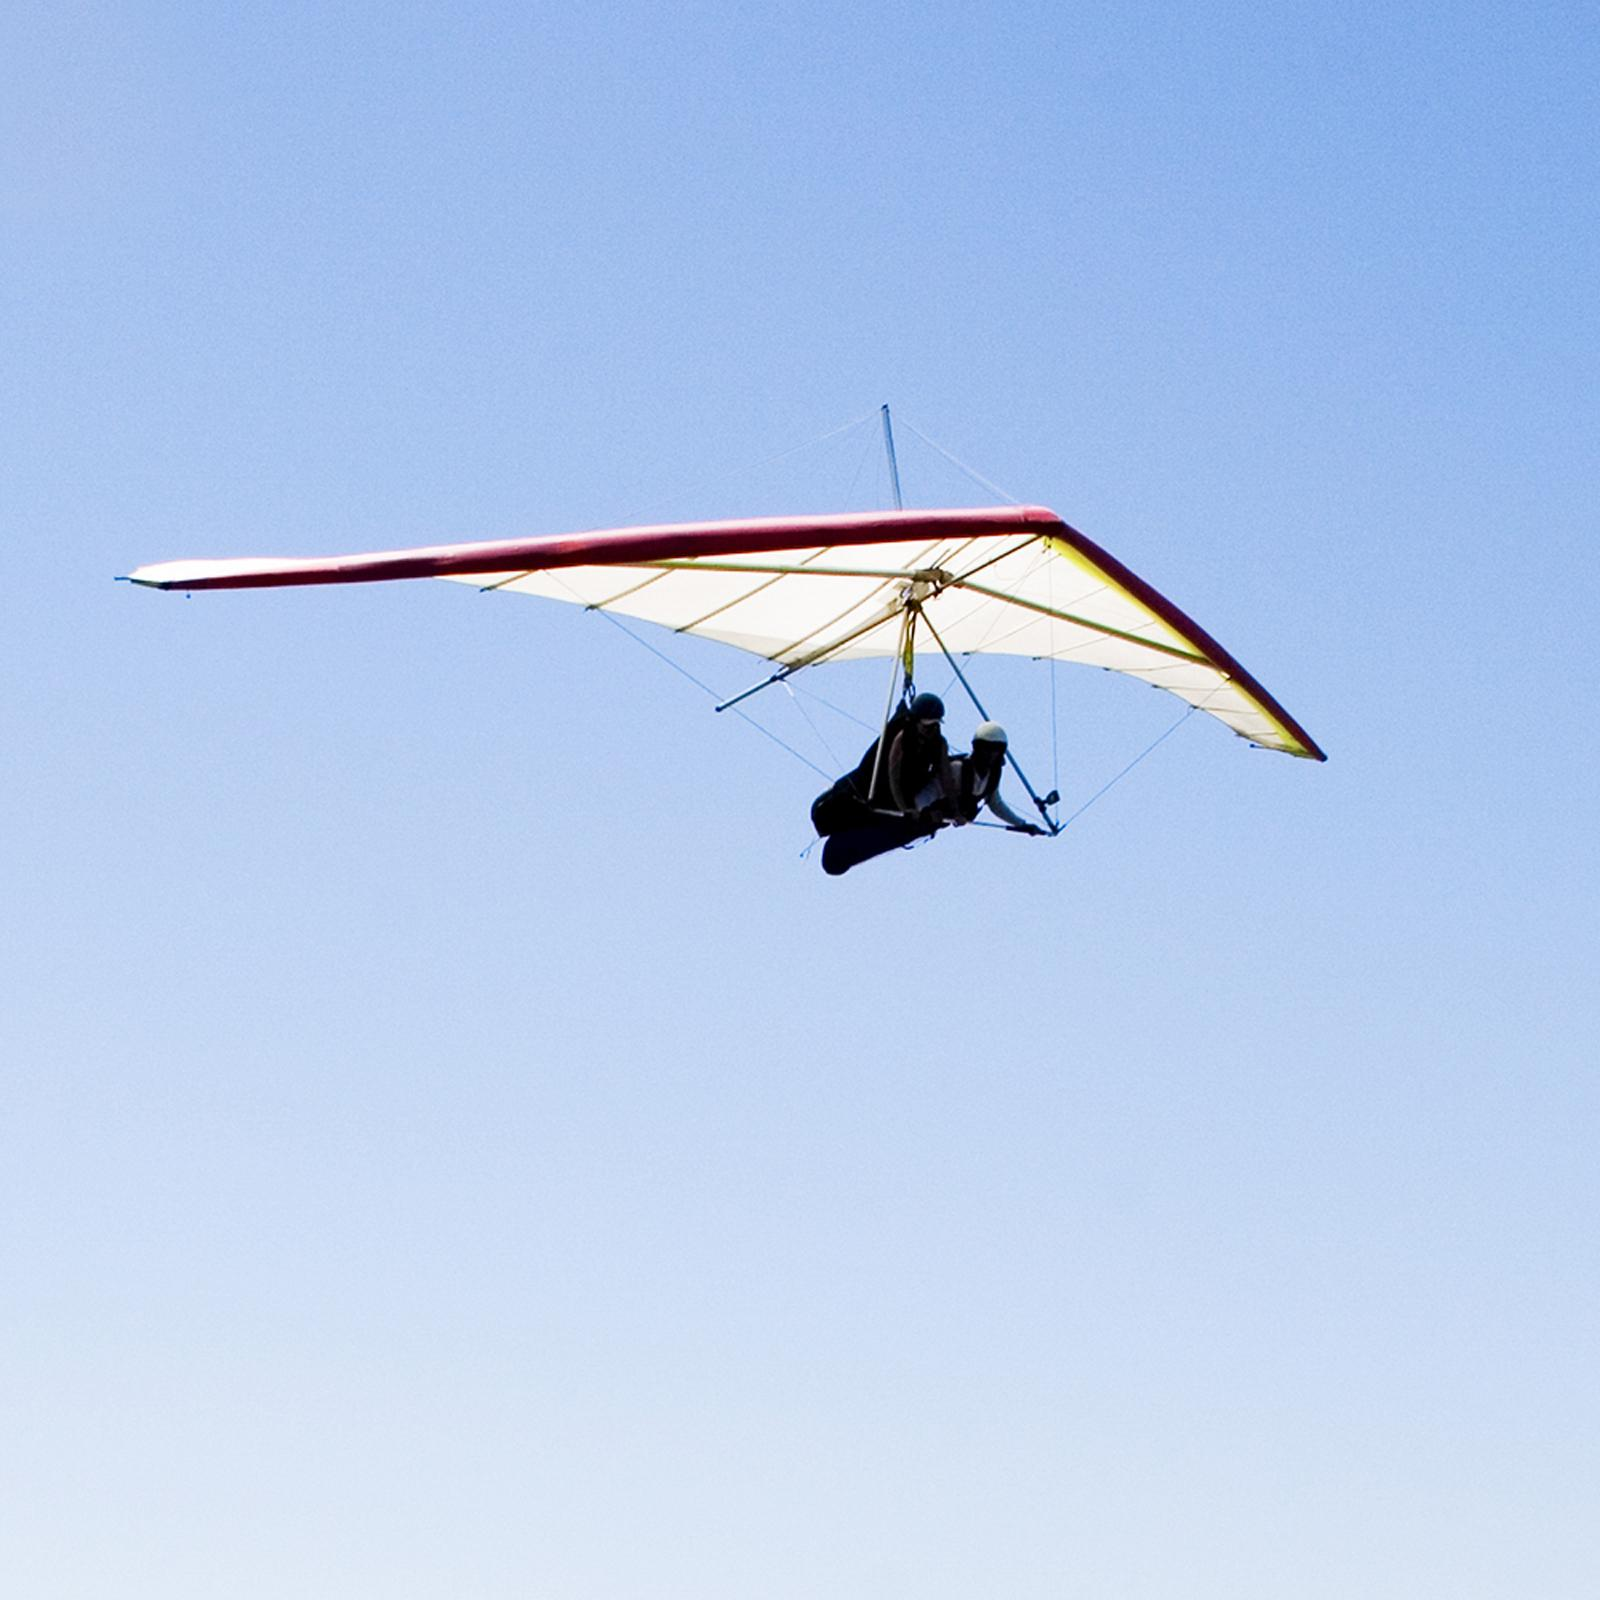 2 Tickets for Learn to Hang Glide Class - Austin